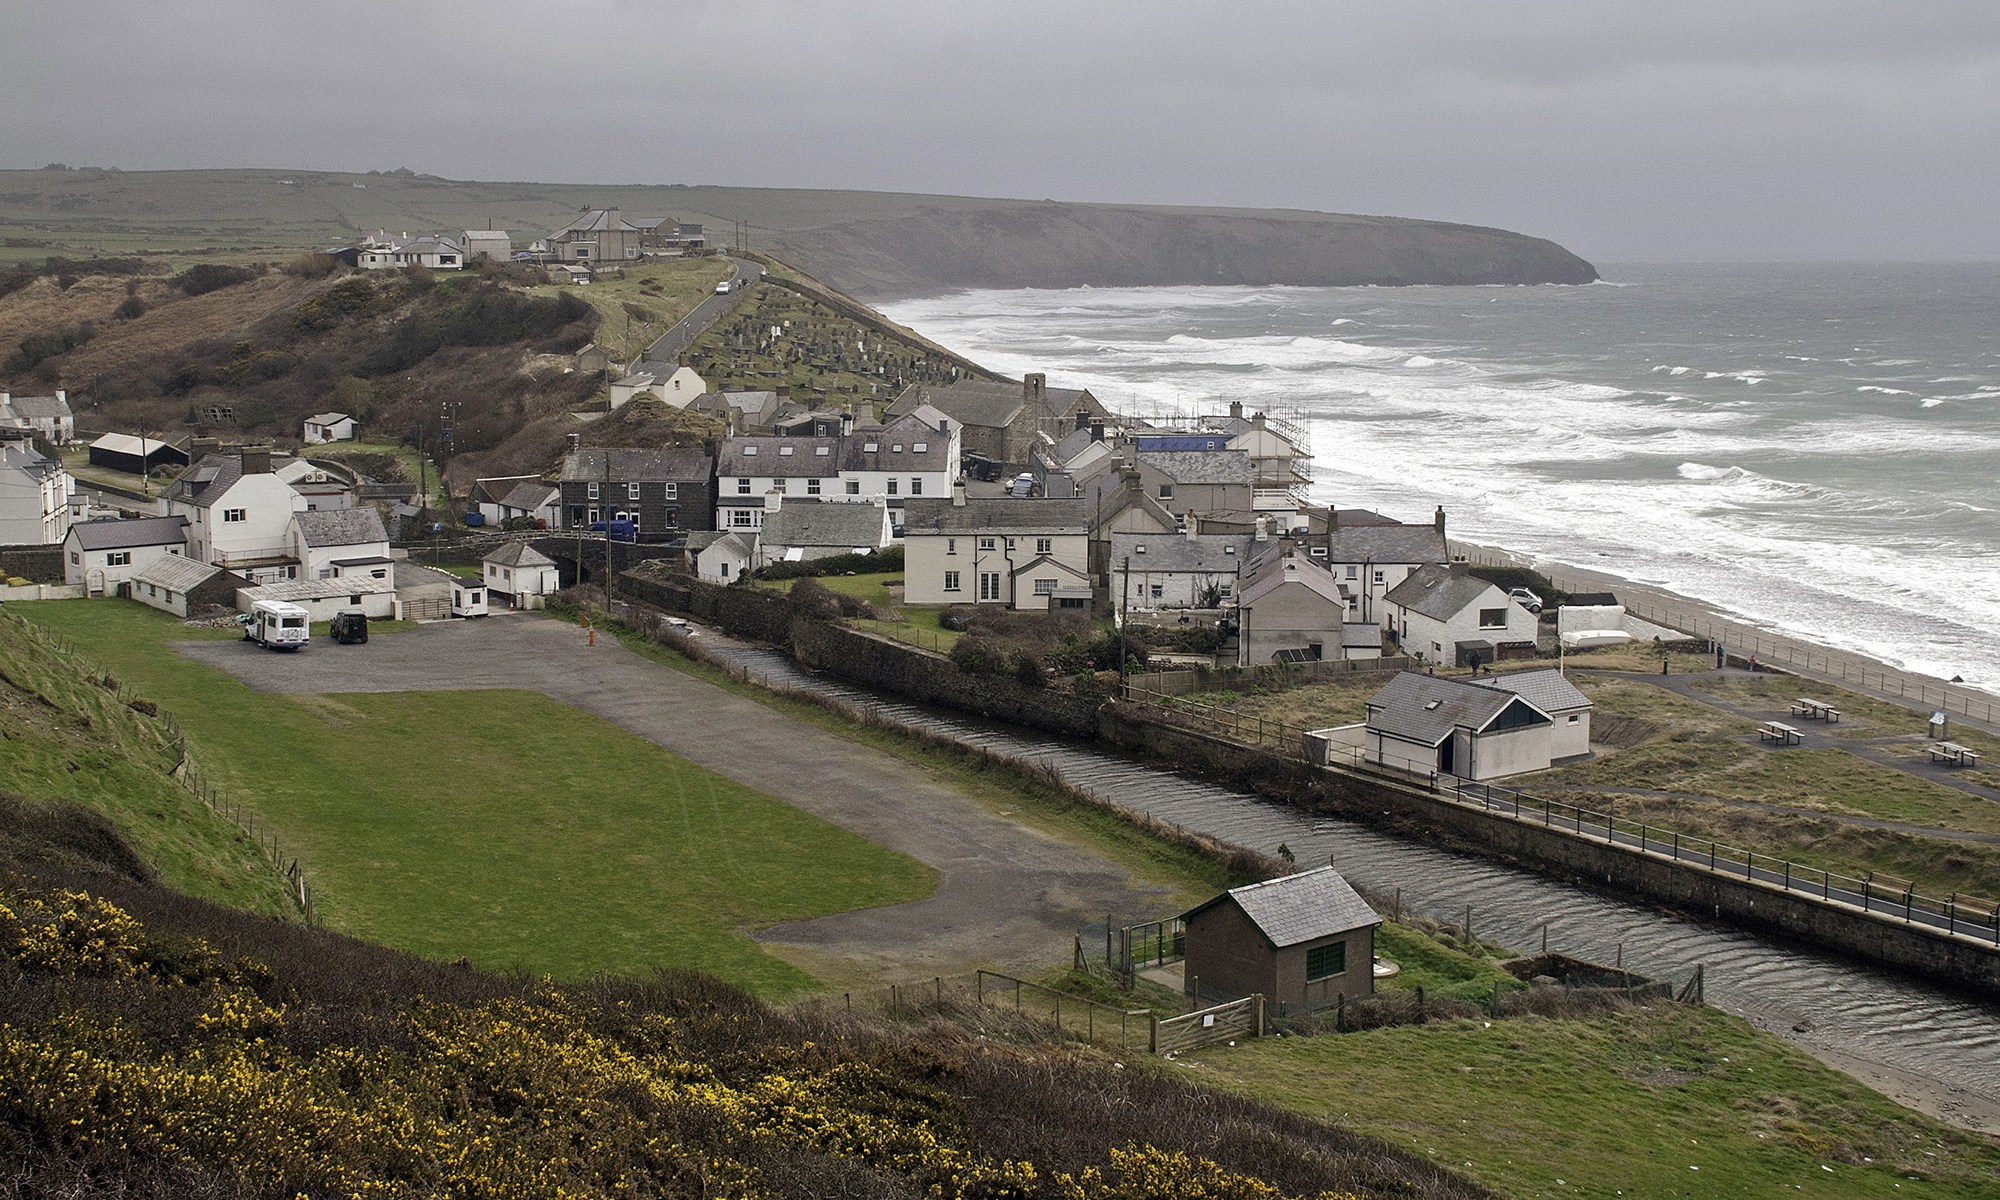 Aberdaron Village, North Wales Coast